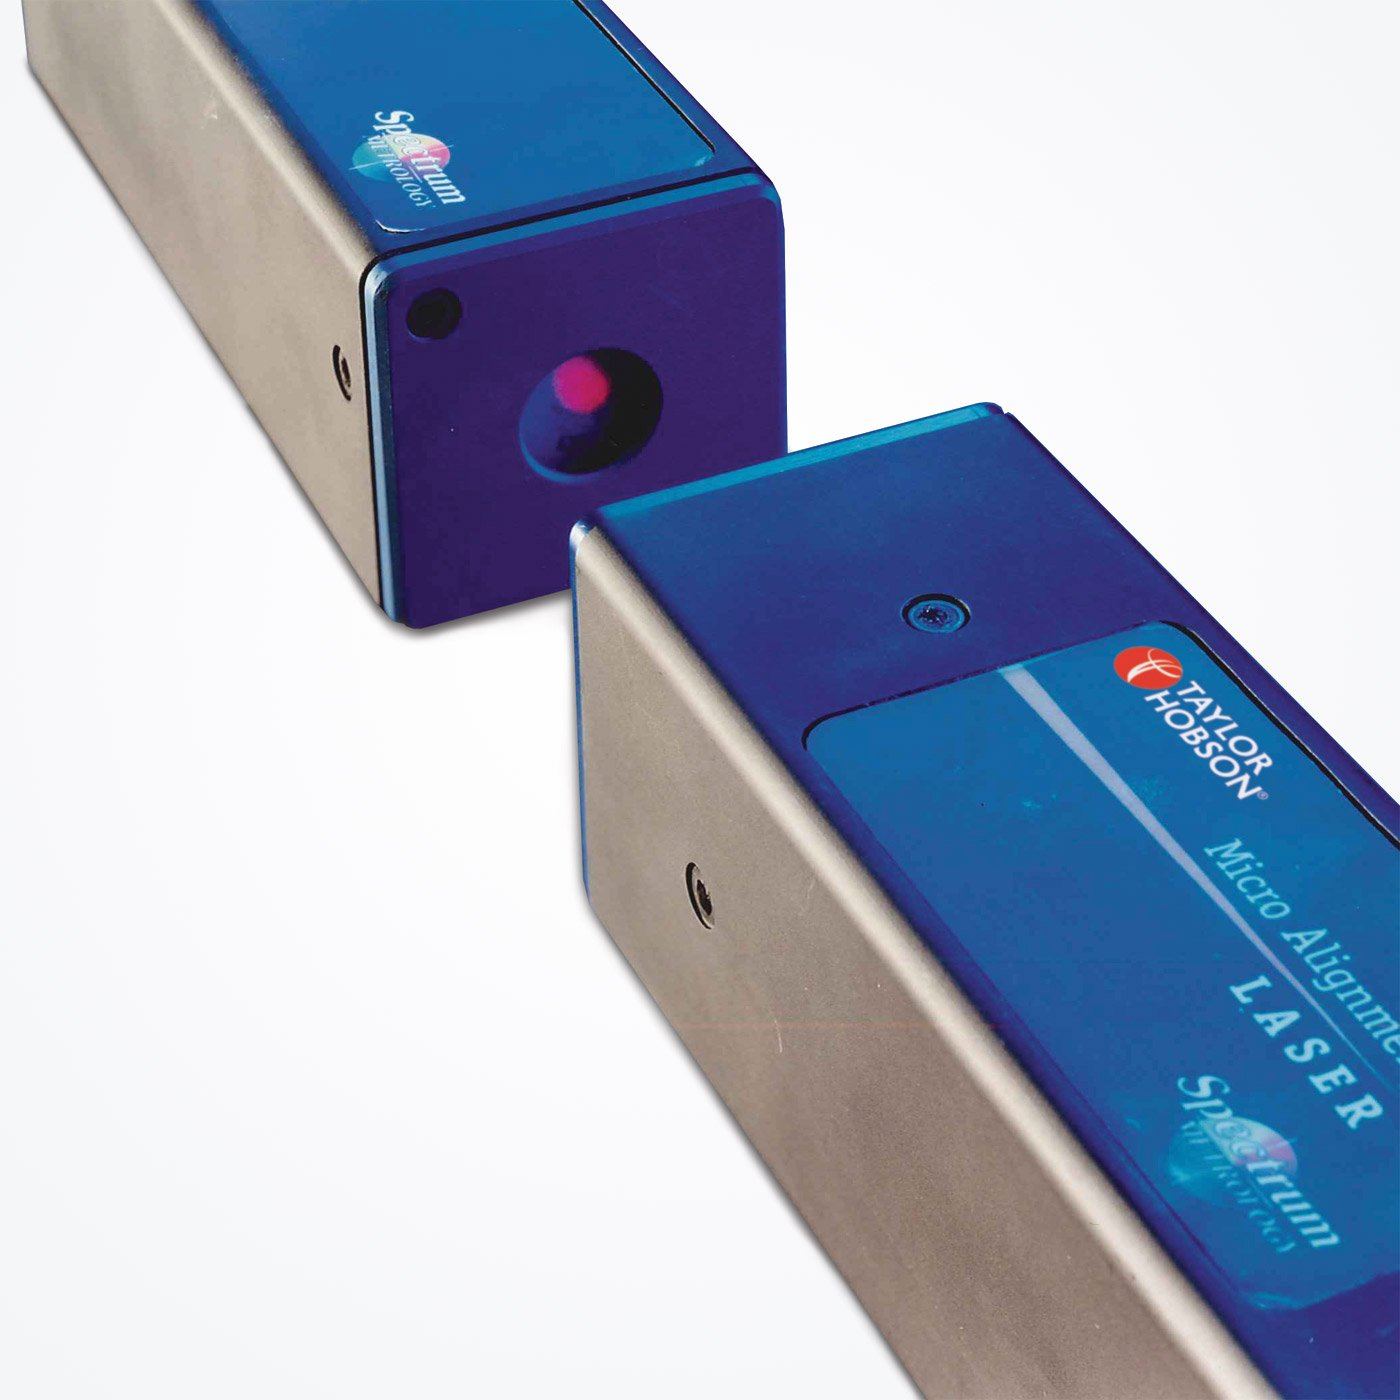 Micro Alignment Laser is a laser measuring instrument for precise measuring of straightness, flatness, parallelism, perpendicularity, alignment